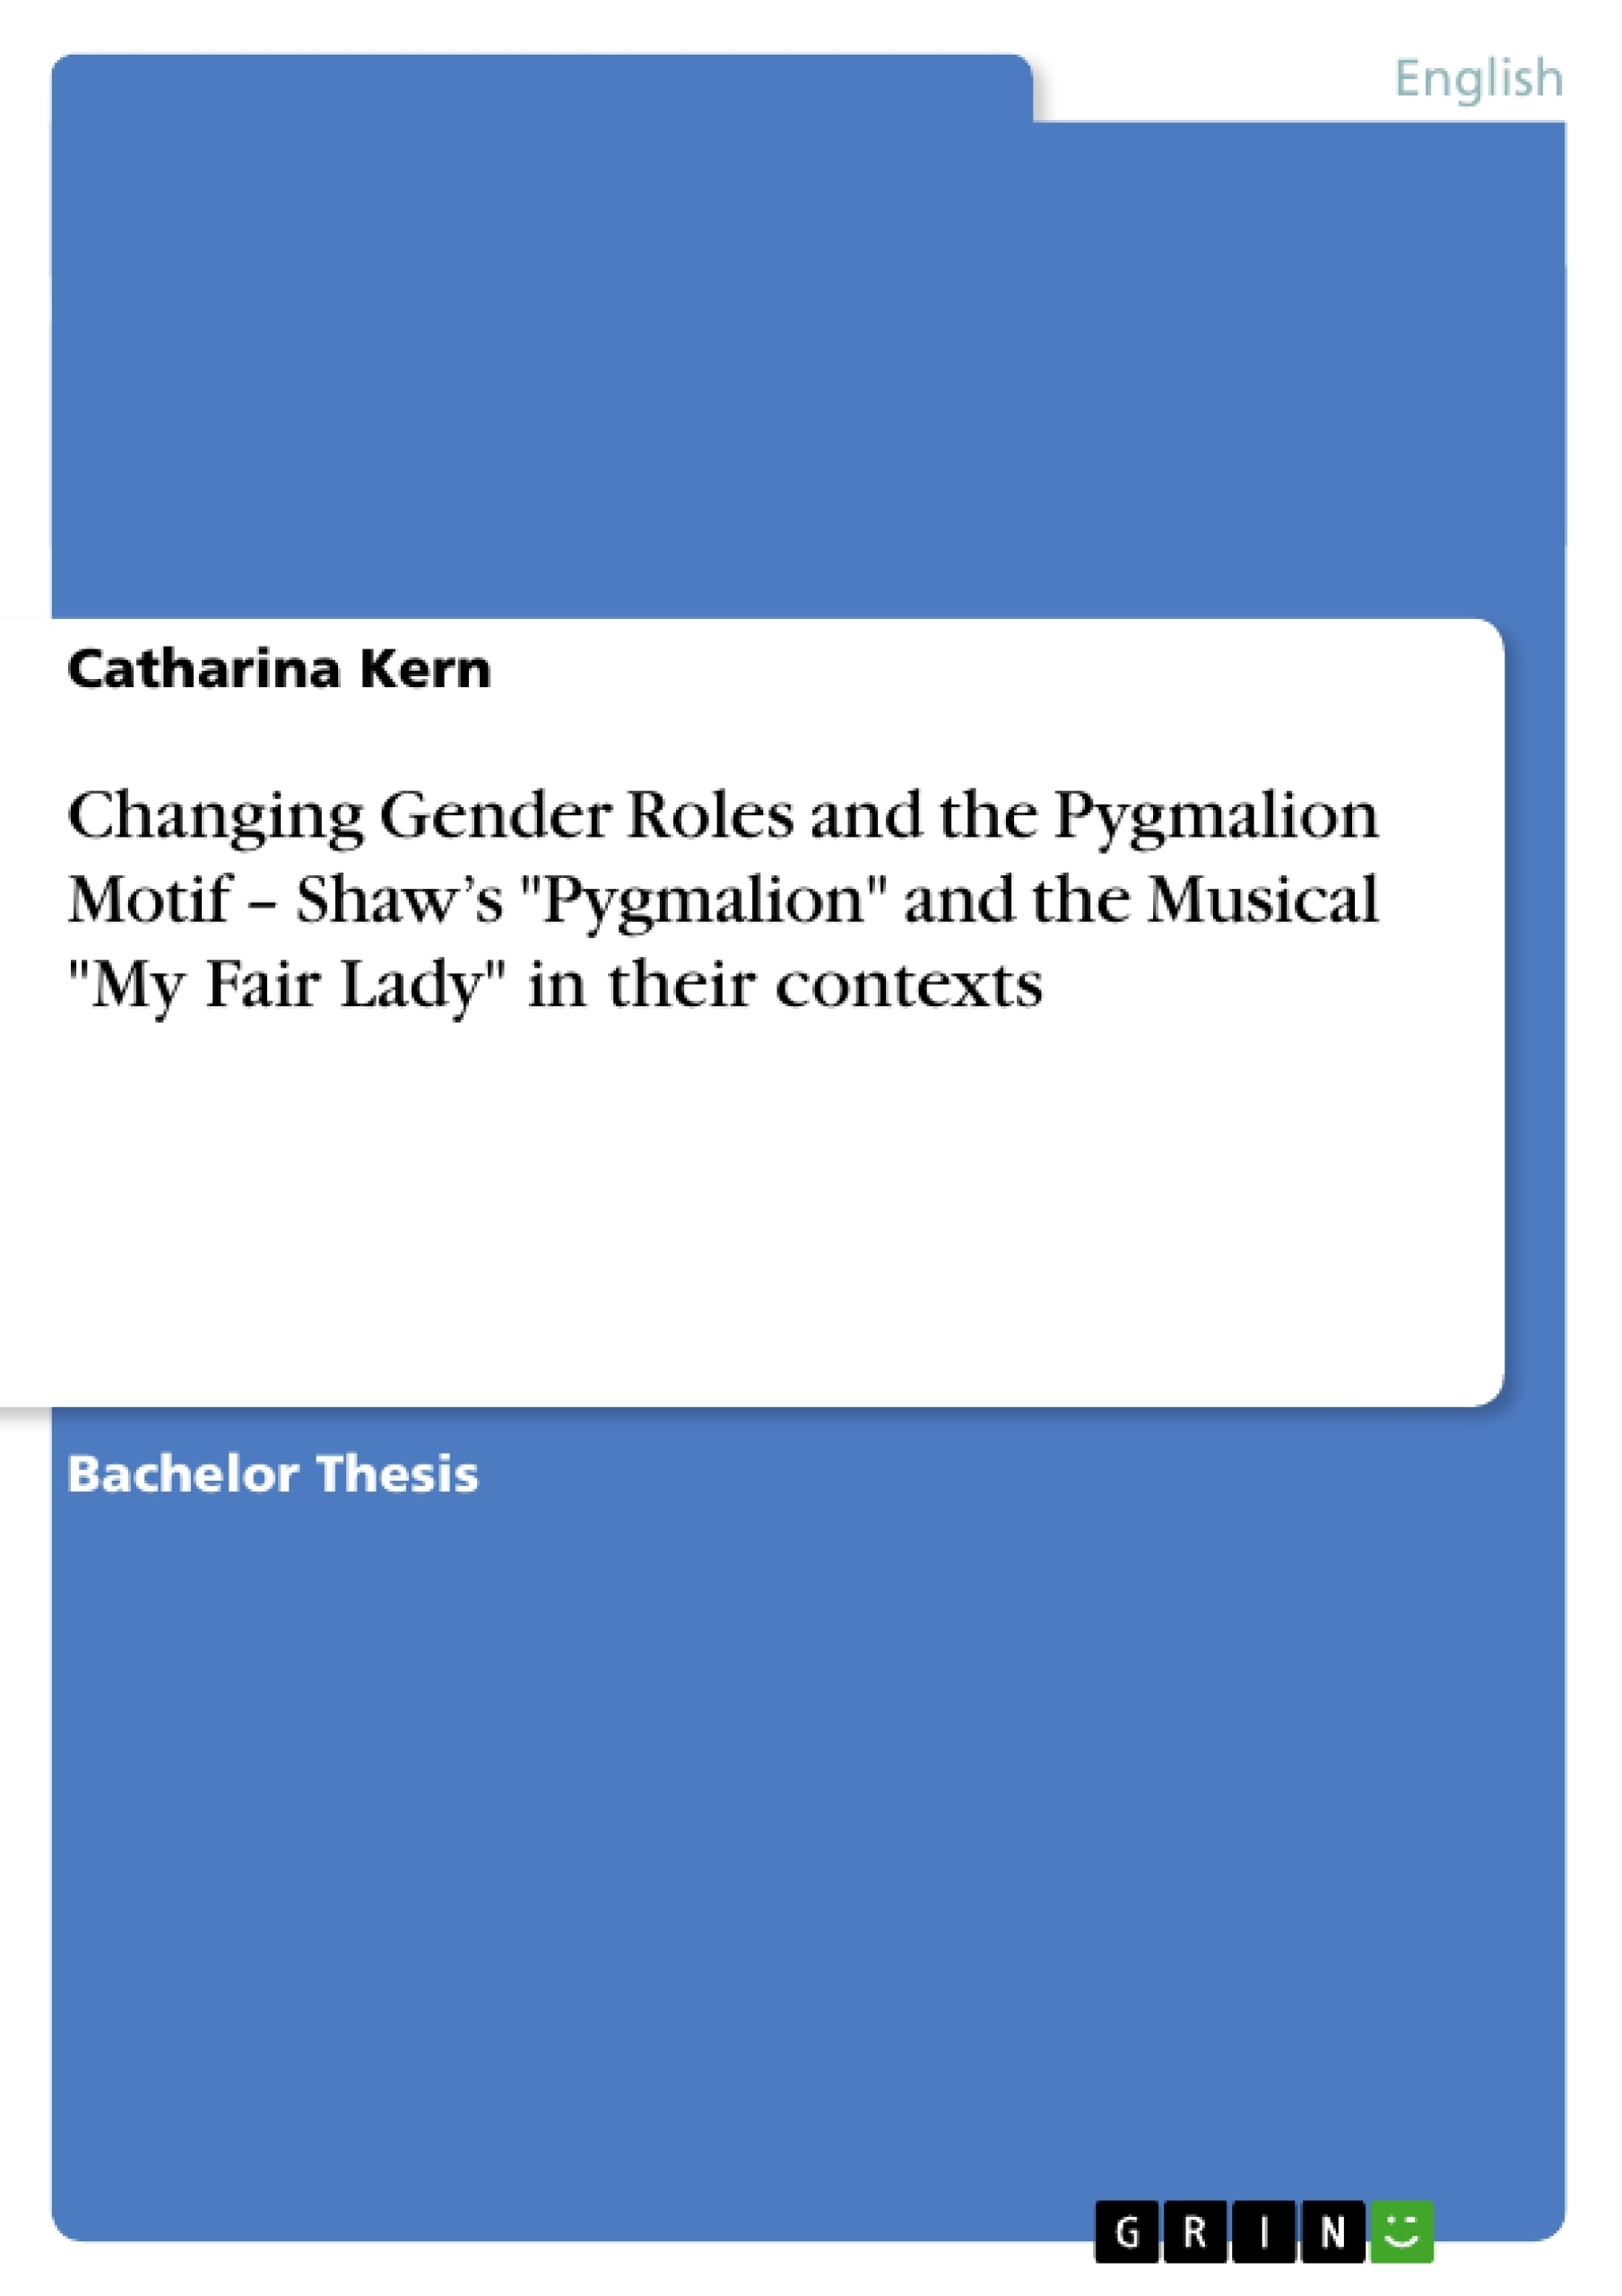 """Title: Changing Gender Roles and the Pygmalion Motif – Shaw's """"Pygmalion"""" and the Musical """"My Fair Lady"""" in their contexts"""